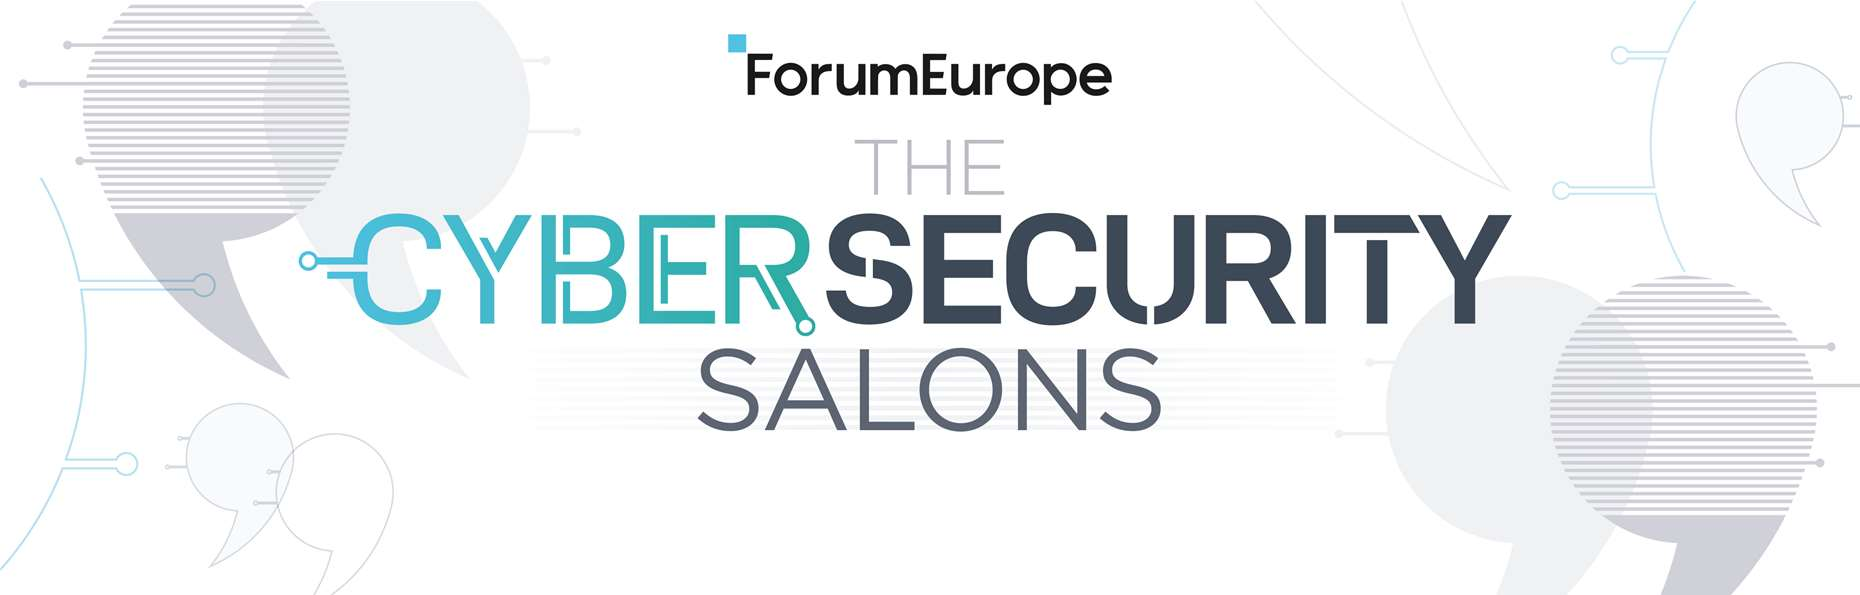 The Cyber Security Salons